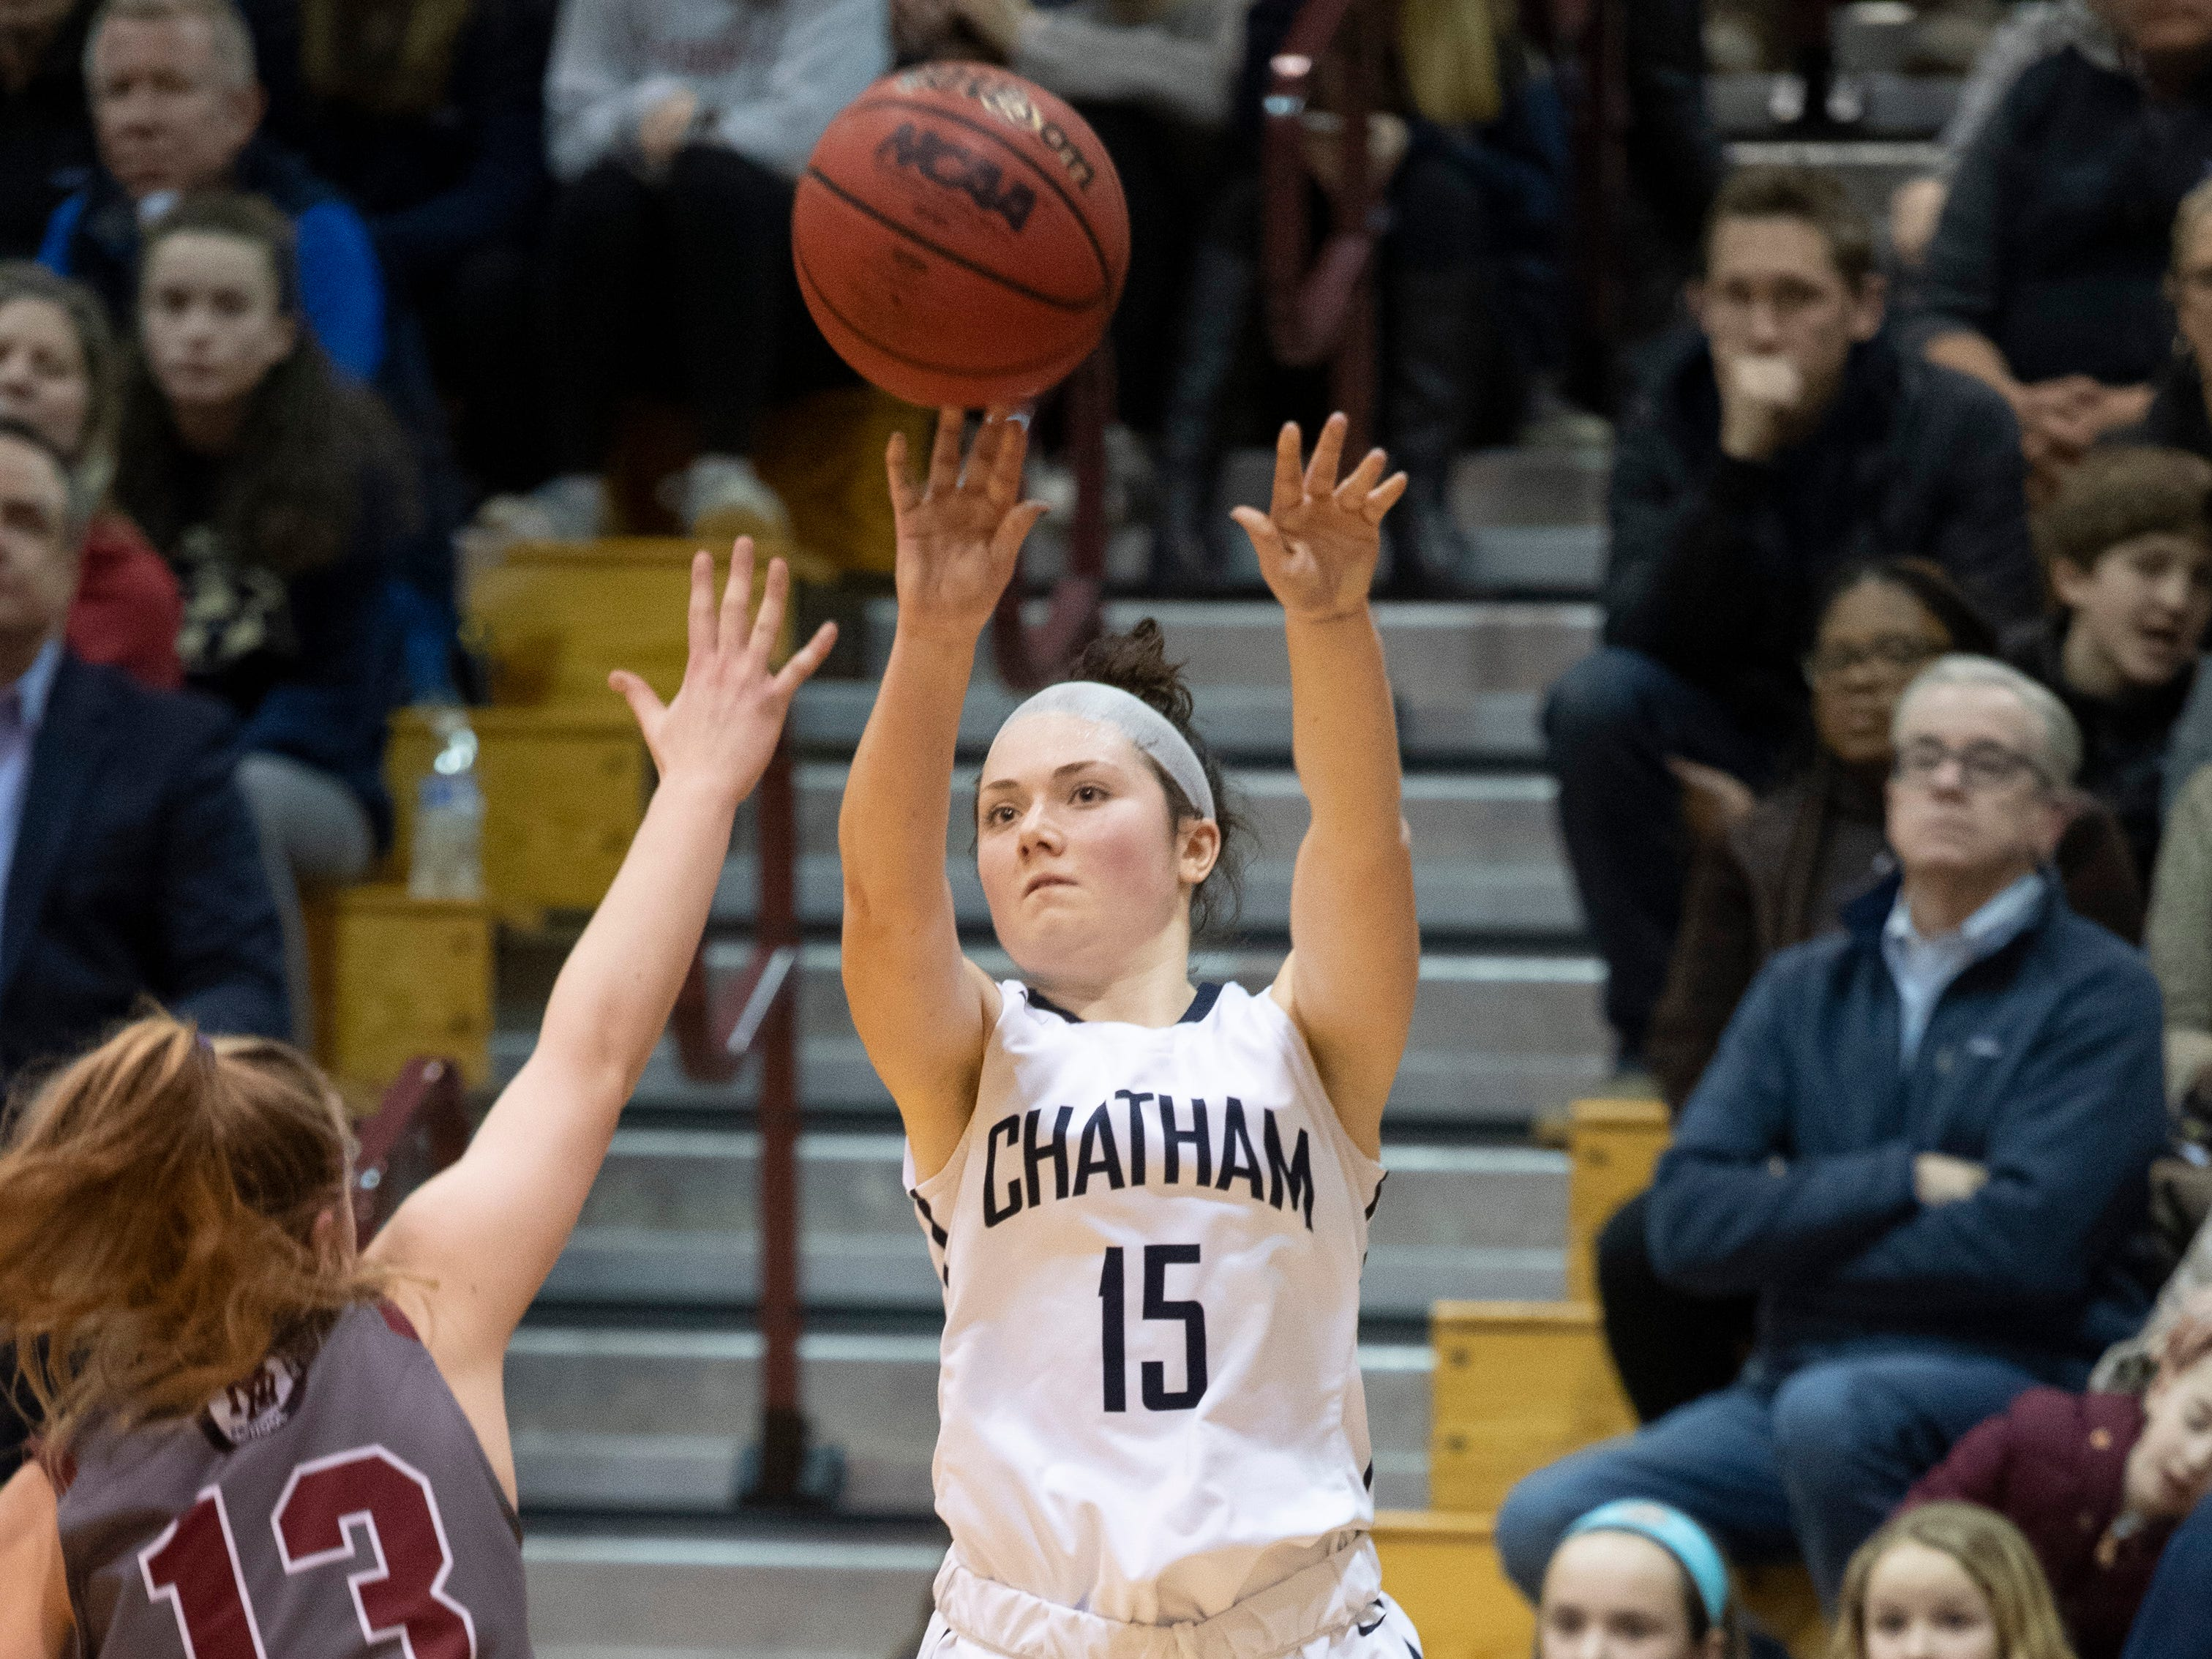 Chatham sophomore guard Tess Ford takes a shot during the Morris County Tournament girls basketball final against Morristown-Beard at the County College of Morris in Randolph on Friday, February 22, 2019.